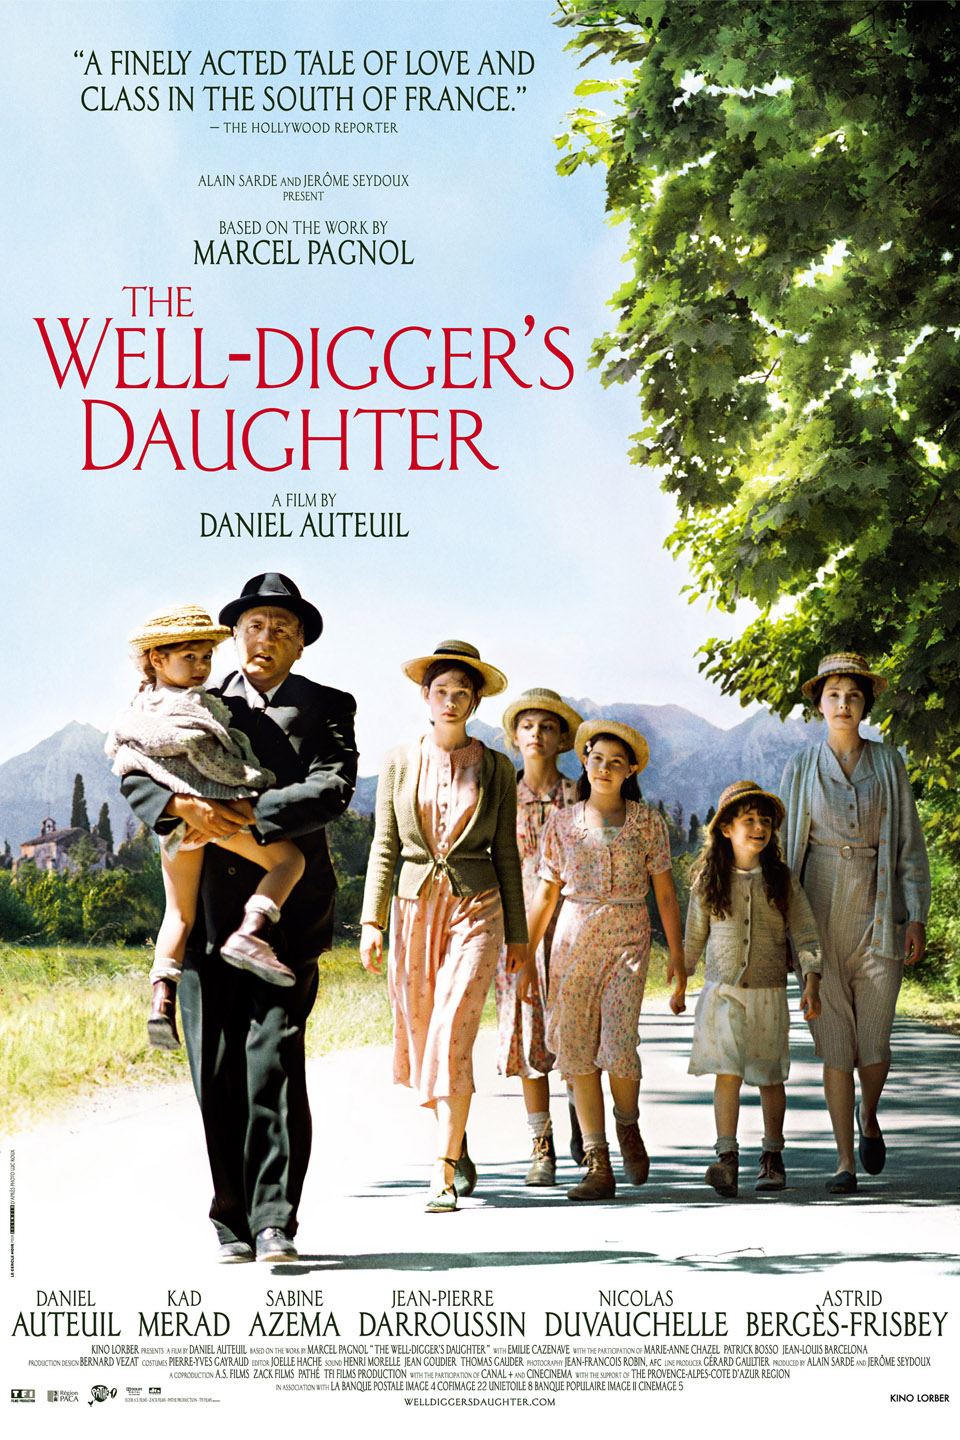 A film by Daniel Auteuil set in an evocative landscape and period.  A romantic drama set in rural Provence at the beginning of the Second World War , this film is both directed by and stars Daniel Auteuil, who is one of France's most famous film actors.  Auteuil plays Pascal Amoretti, a well-digger, whose daughter, Patricia, becomes briefly involved with Jacques, the wealthy son of a shop-keeper, who is also a fighter pilot.  Pascal becomes torn between his own personal honour and love for his daughter, as Jacques is called away to the front and Patricia finds herself expecting a child. Jacques' rich parents initially accuse her of blackmail and it is feared that Jacques has abandoned Patricia because of her lower social status.  When it becomes known that Jacques has gone missing in action, Pascal tries to deal with this situation and protect his family as best he can.  Rated PG